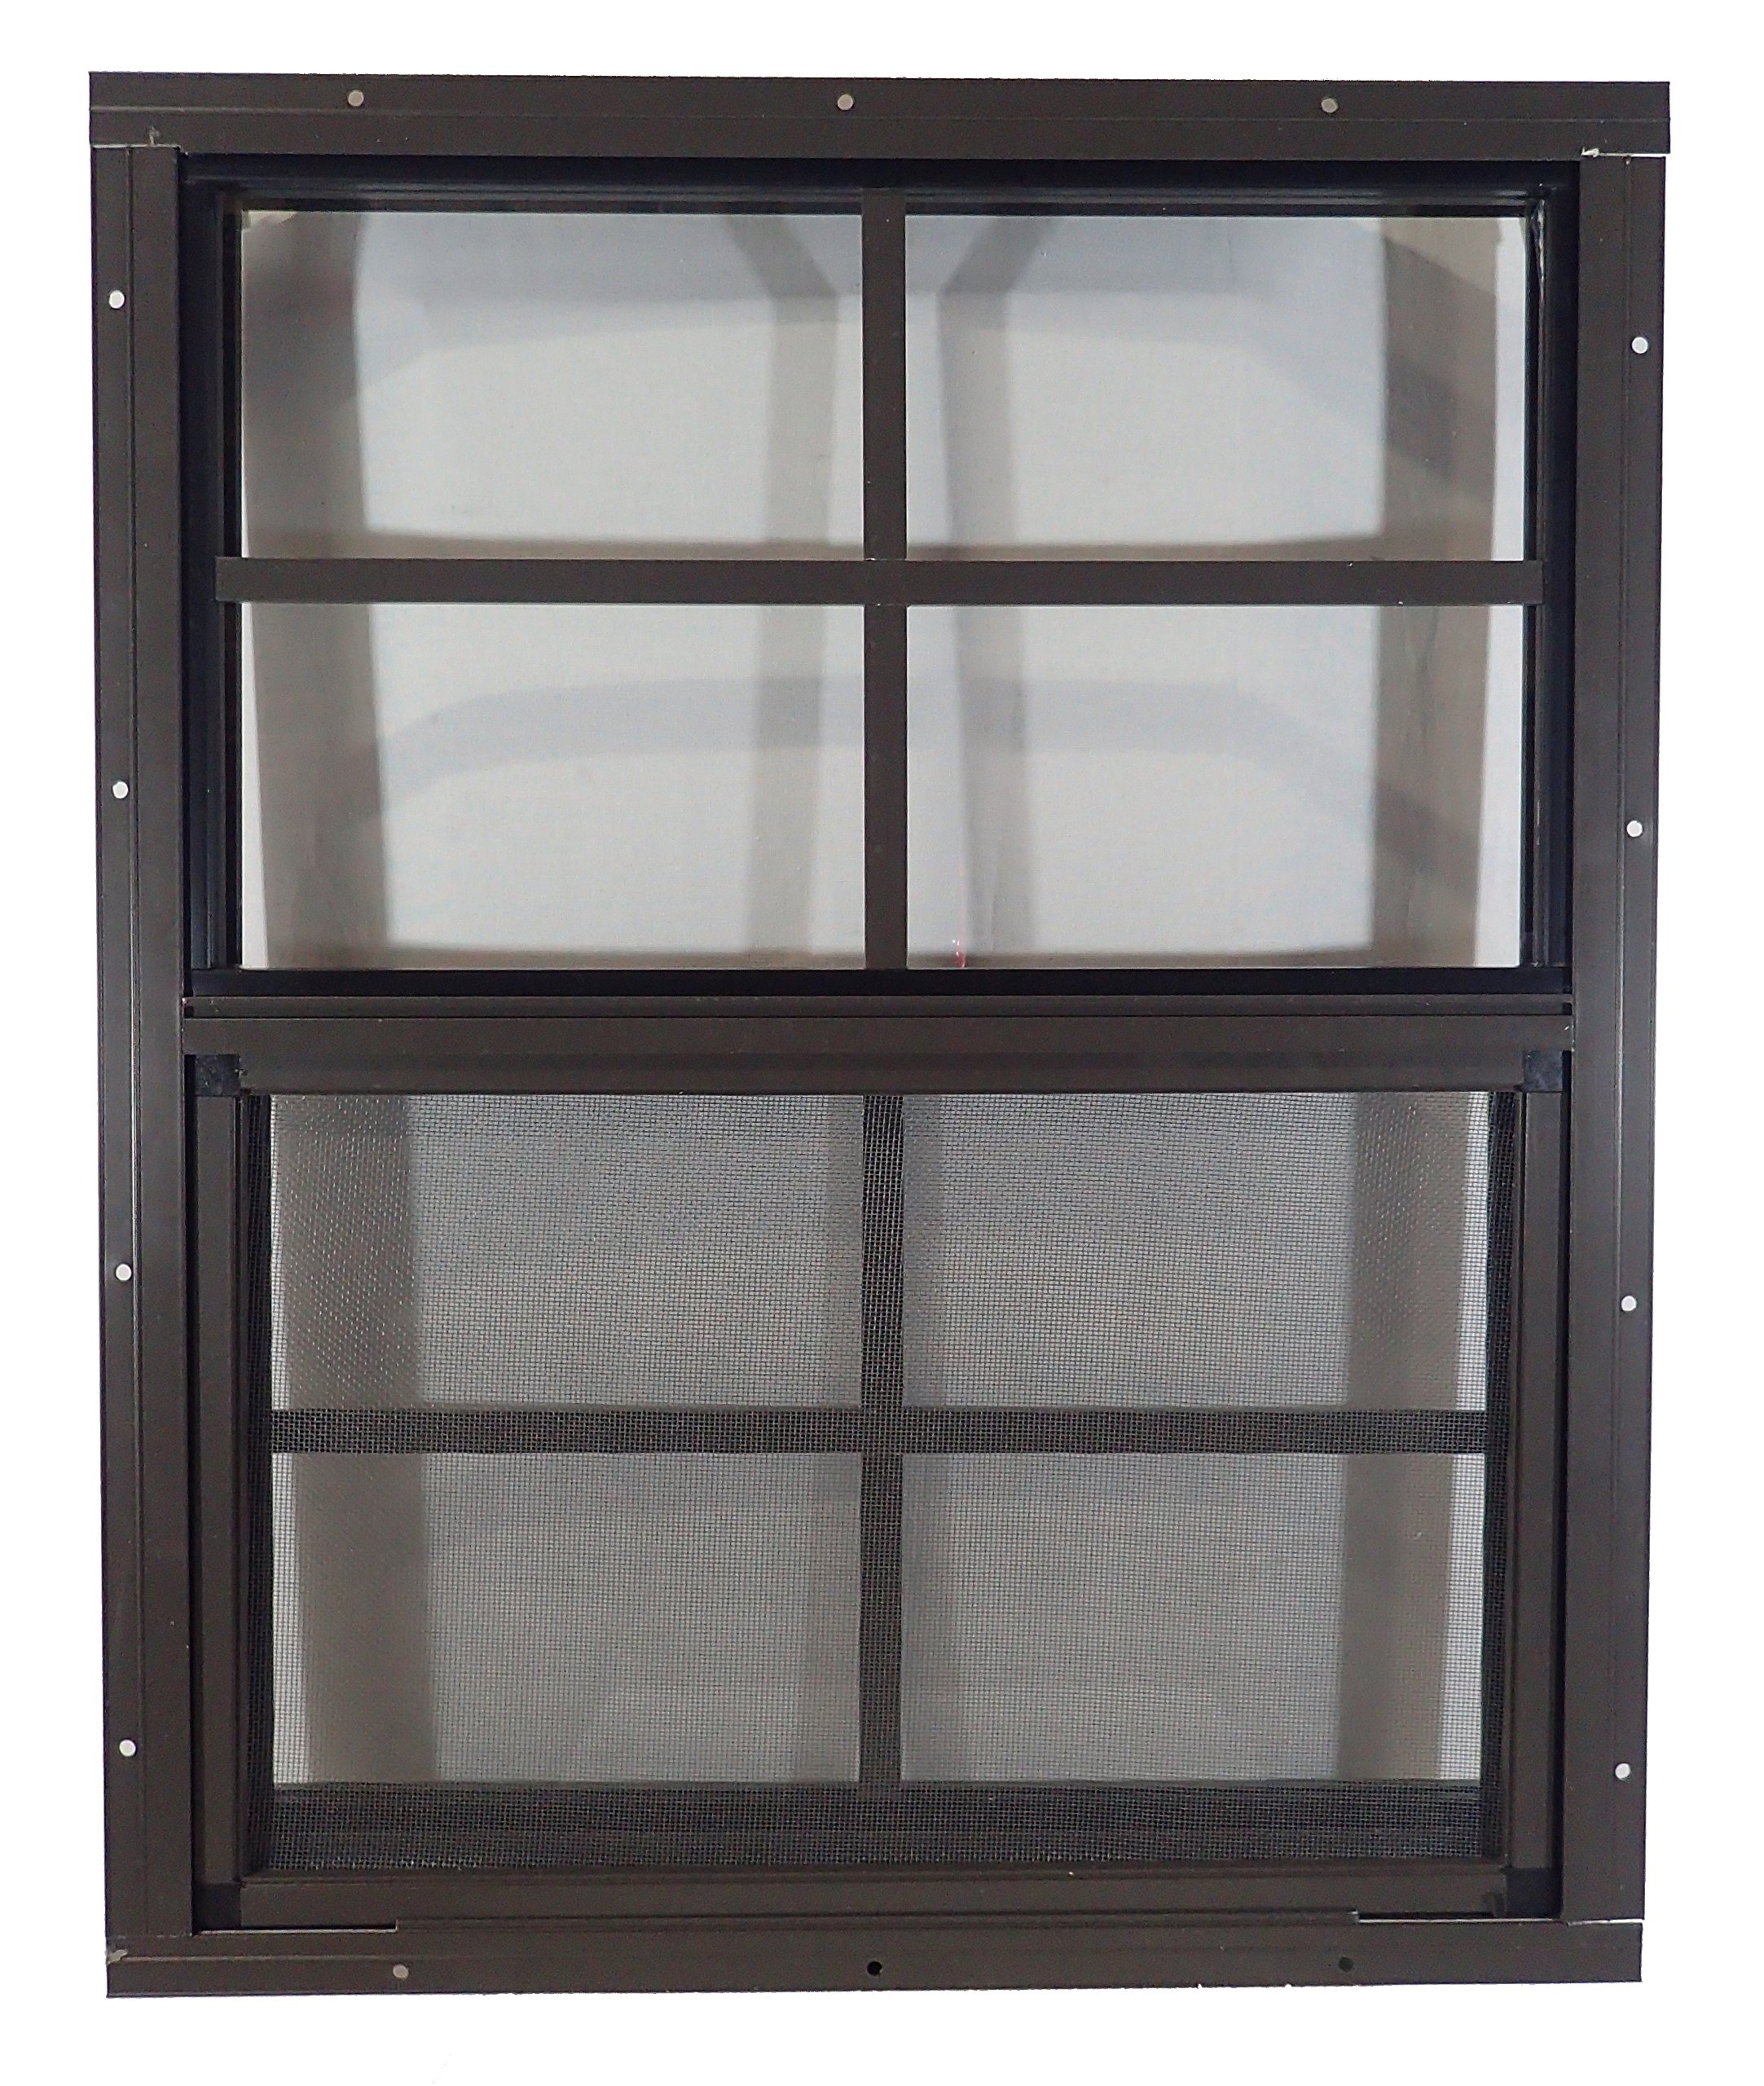 Shed Windows 18'' W x 23'' H - Flush Mount - Playhouse Windows (Brown) by Outdoor Play and Storage